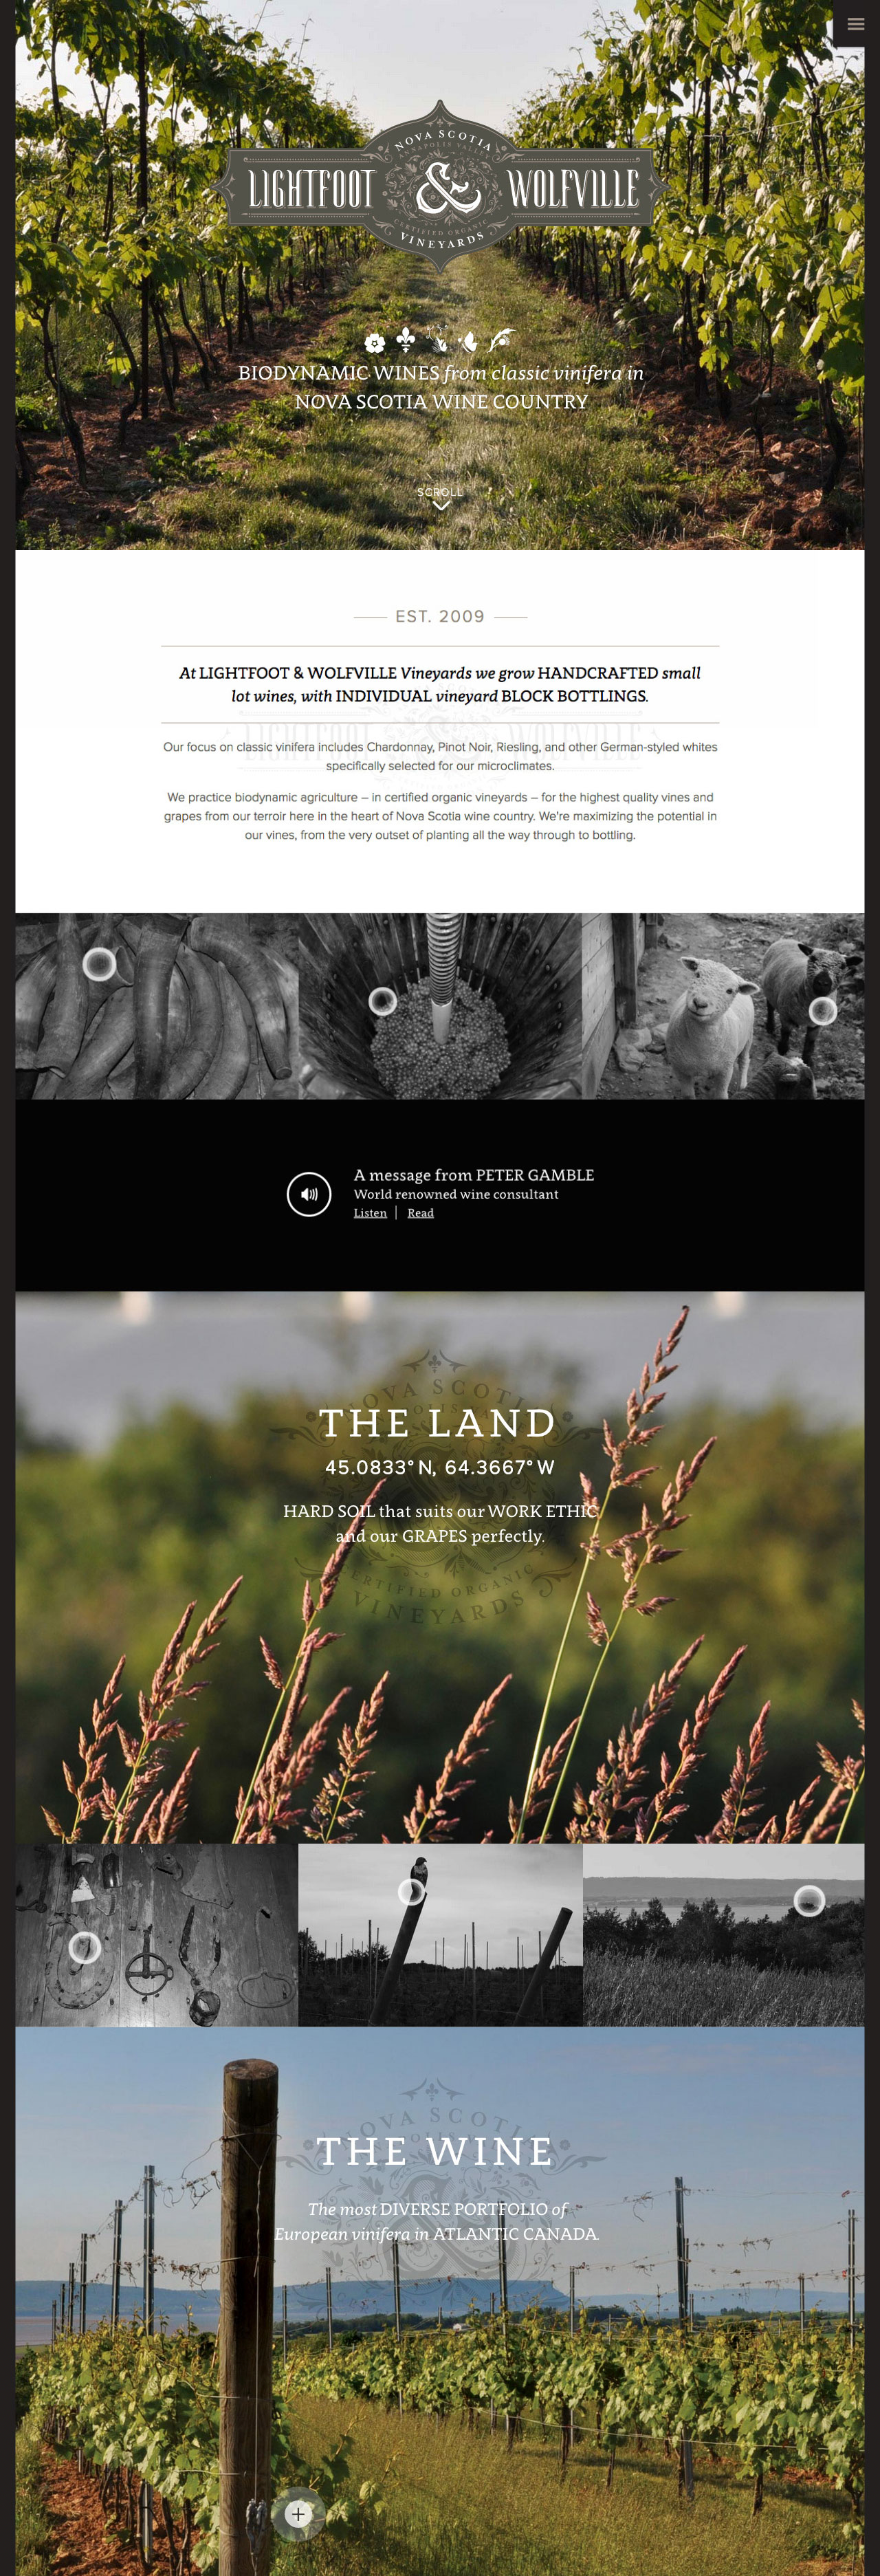 Lightfoot & Wolfville Website Screenshot